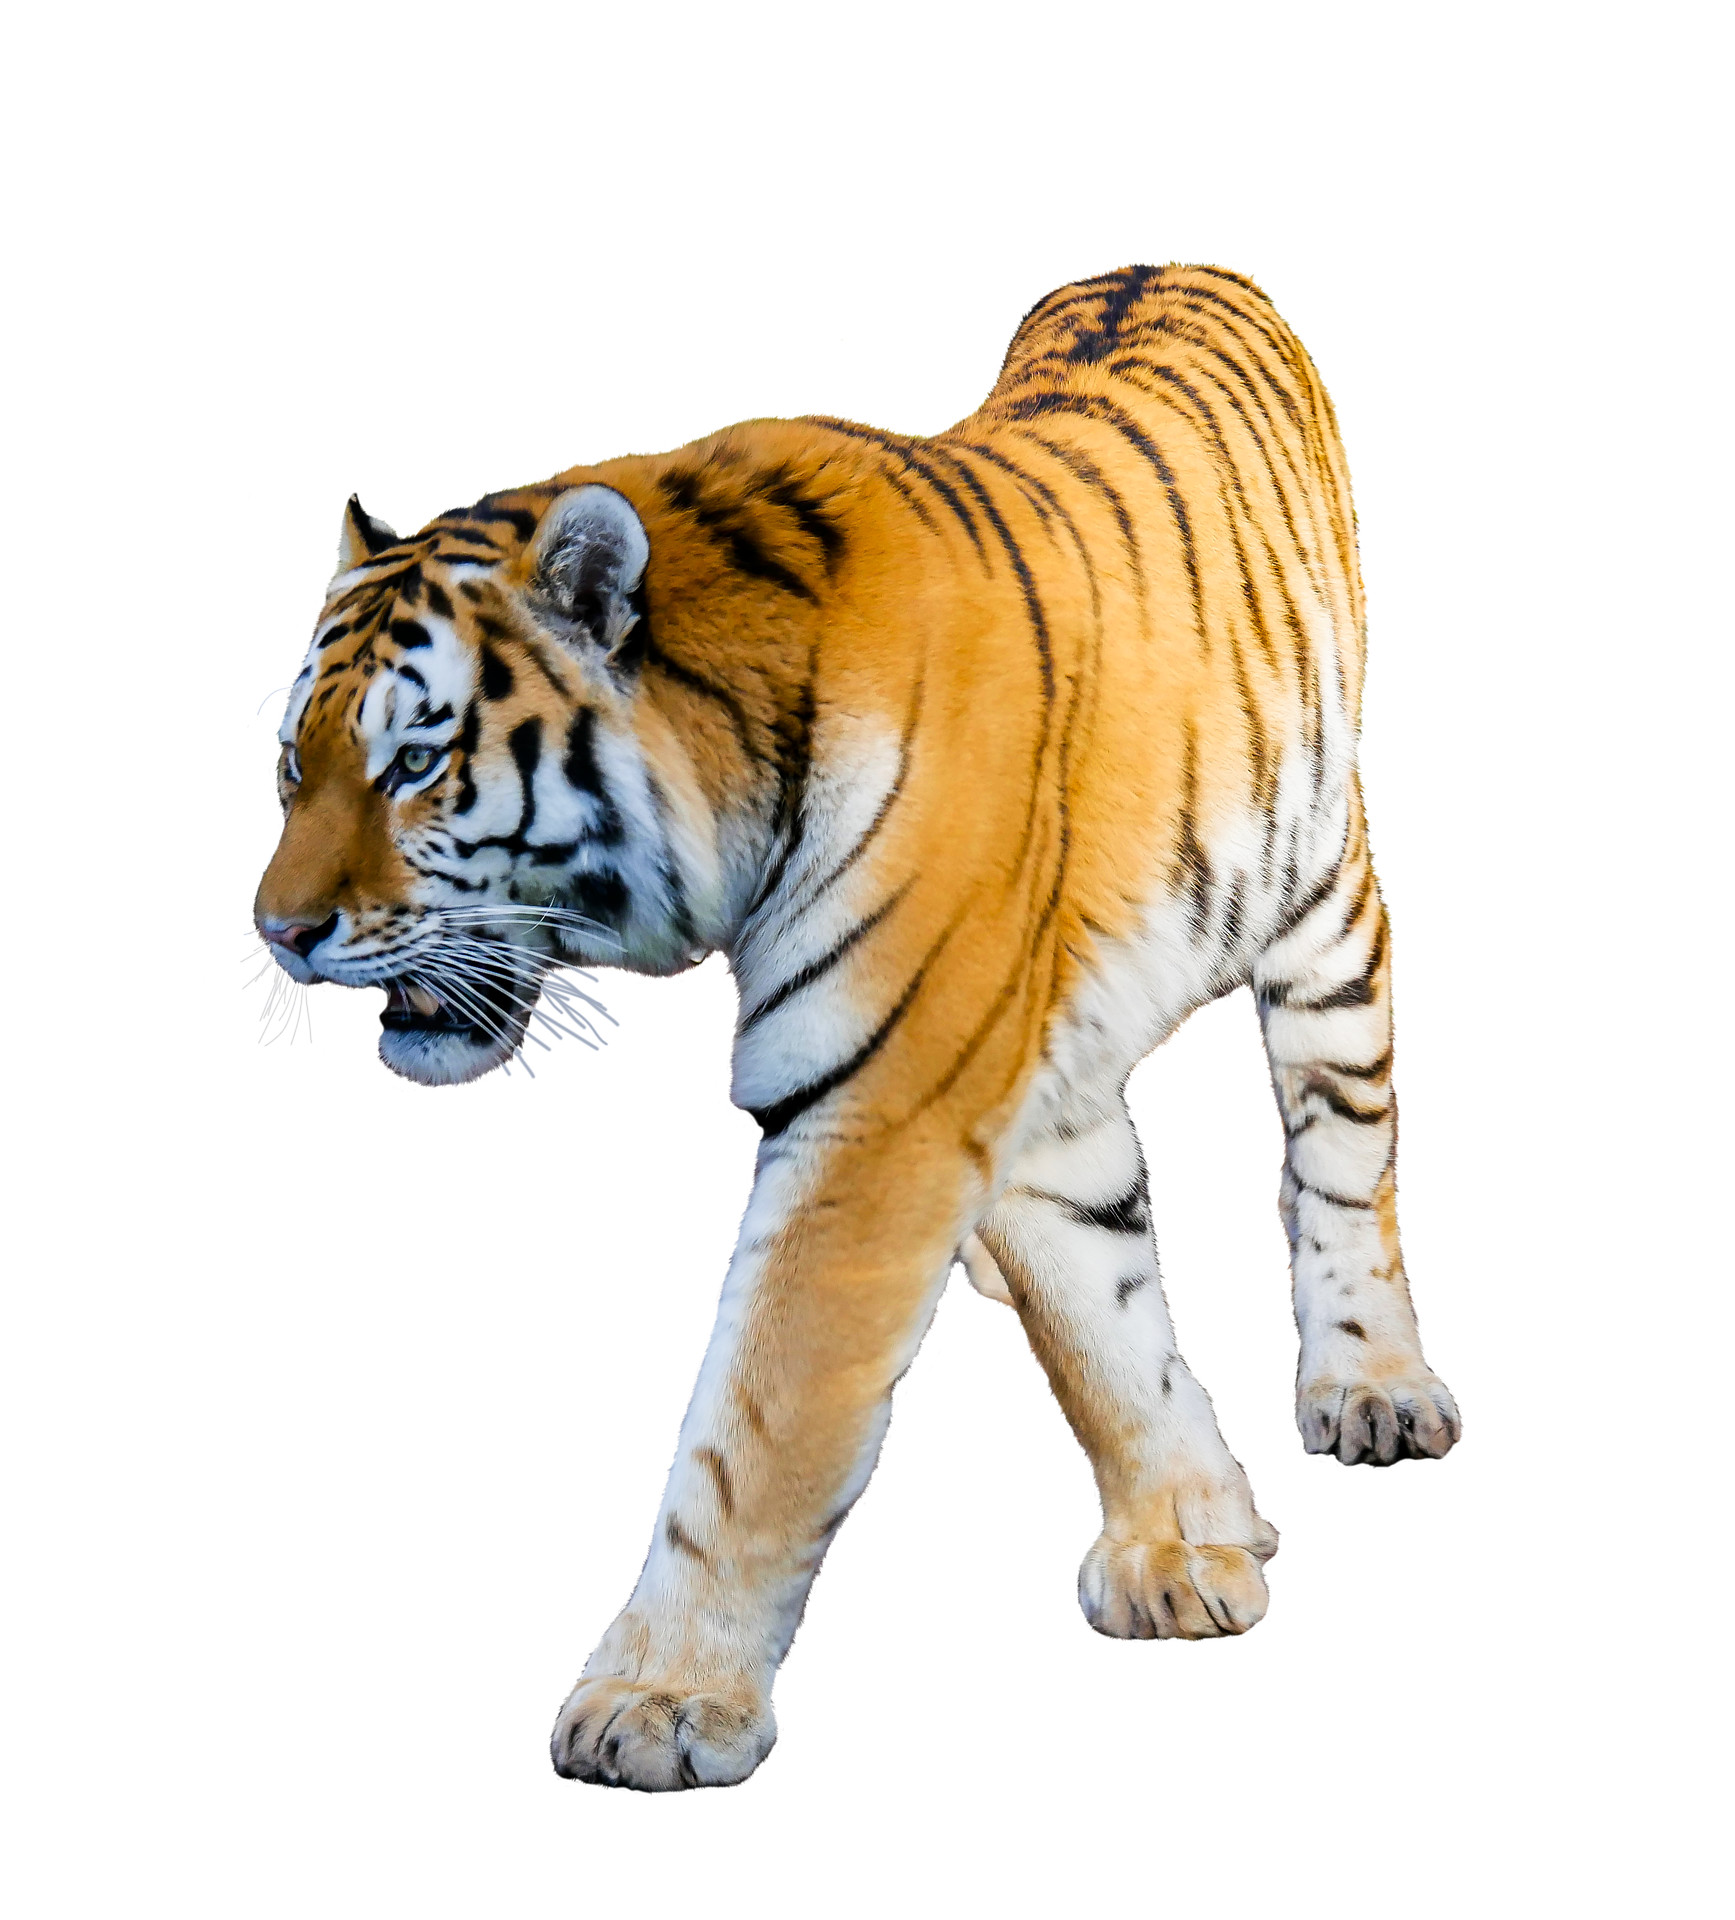 tiger white background ·①